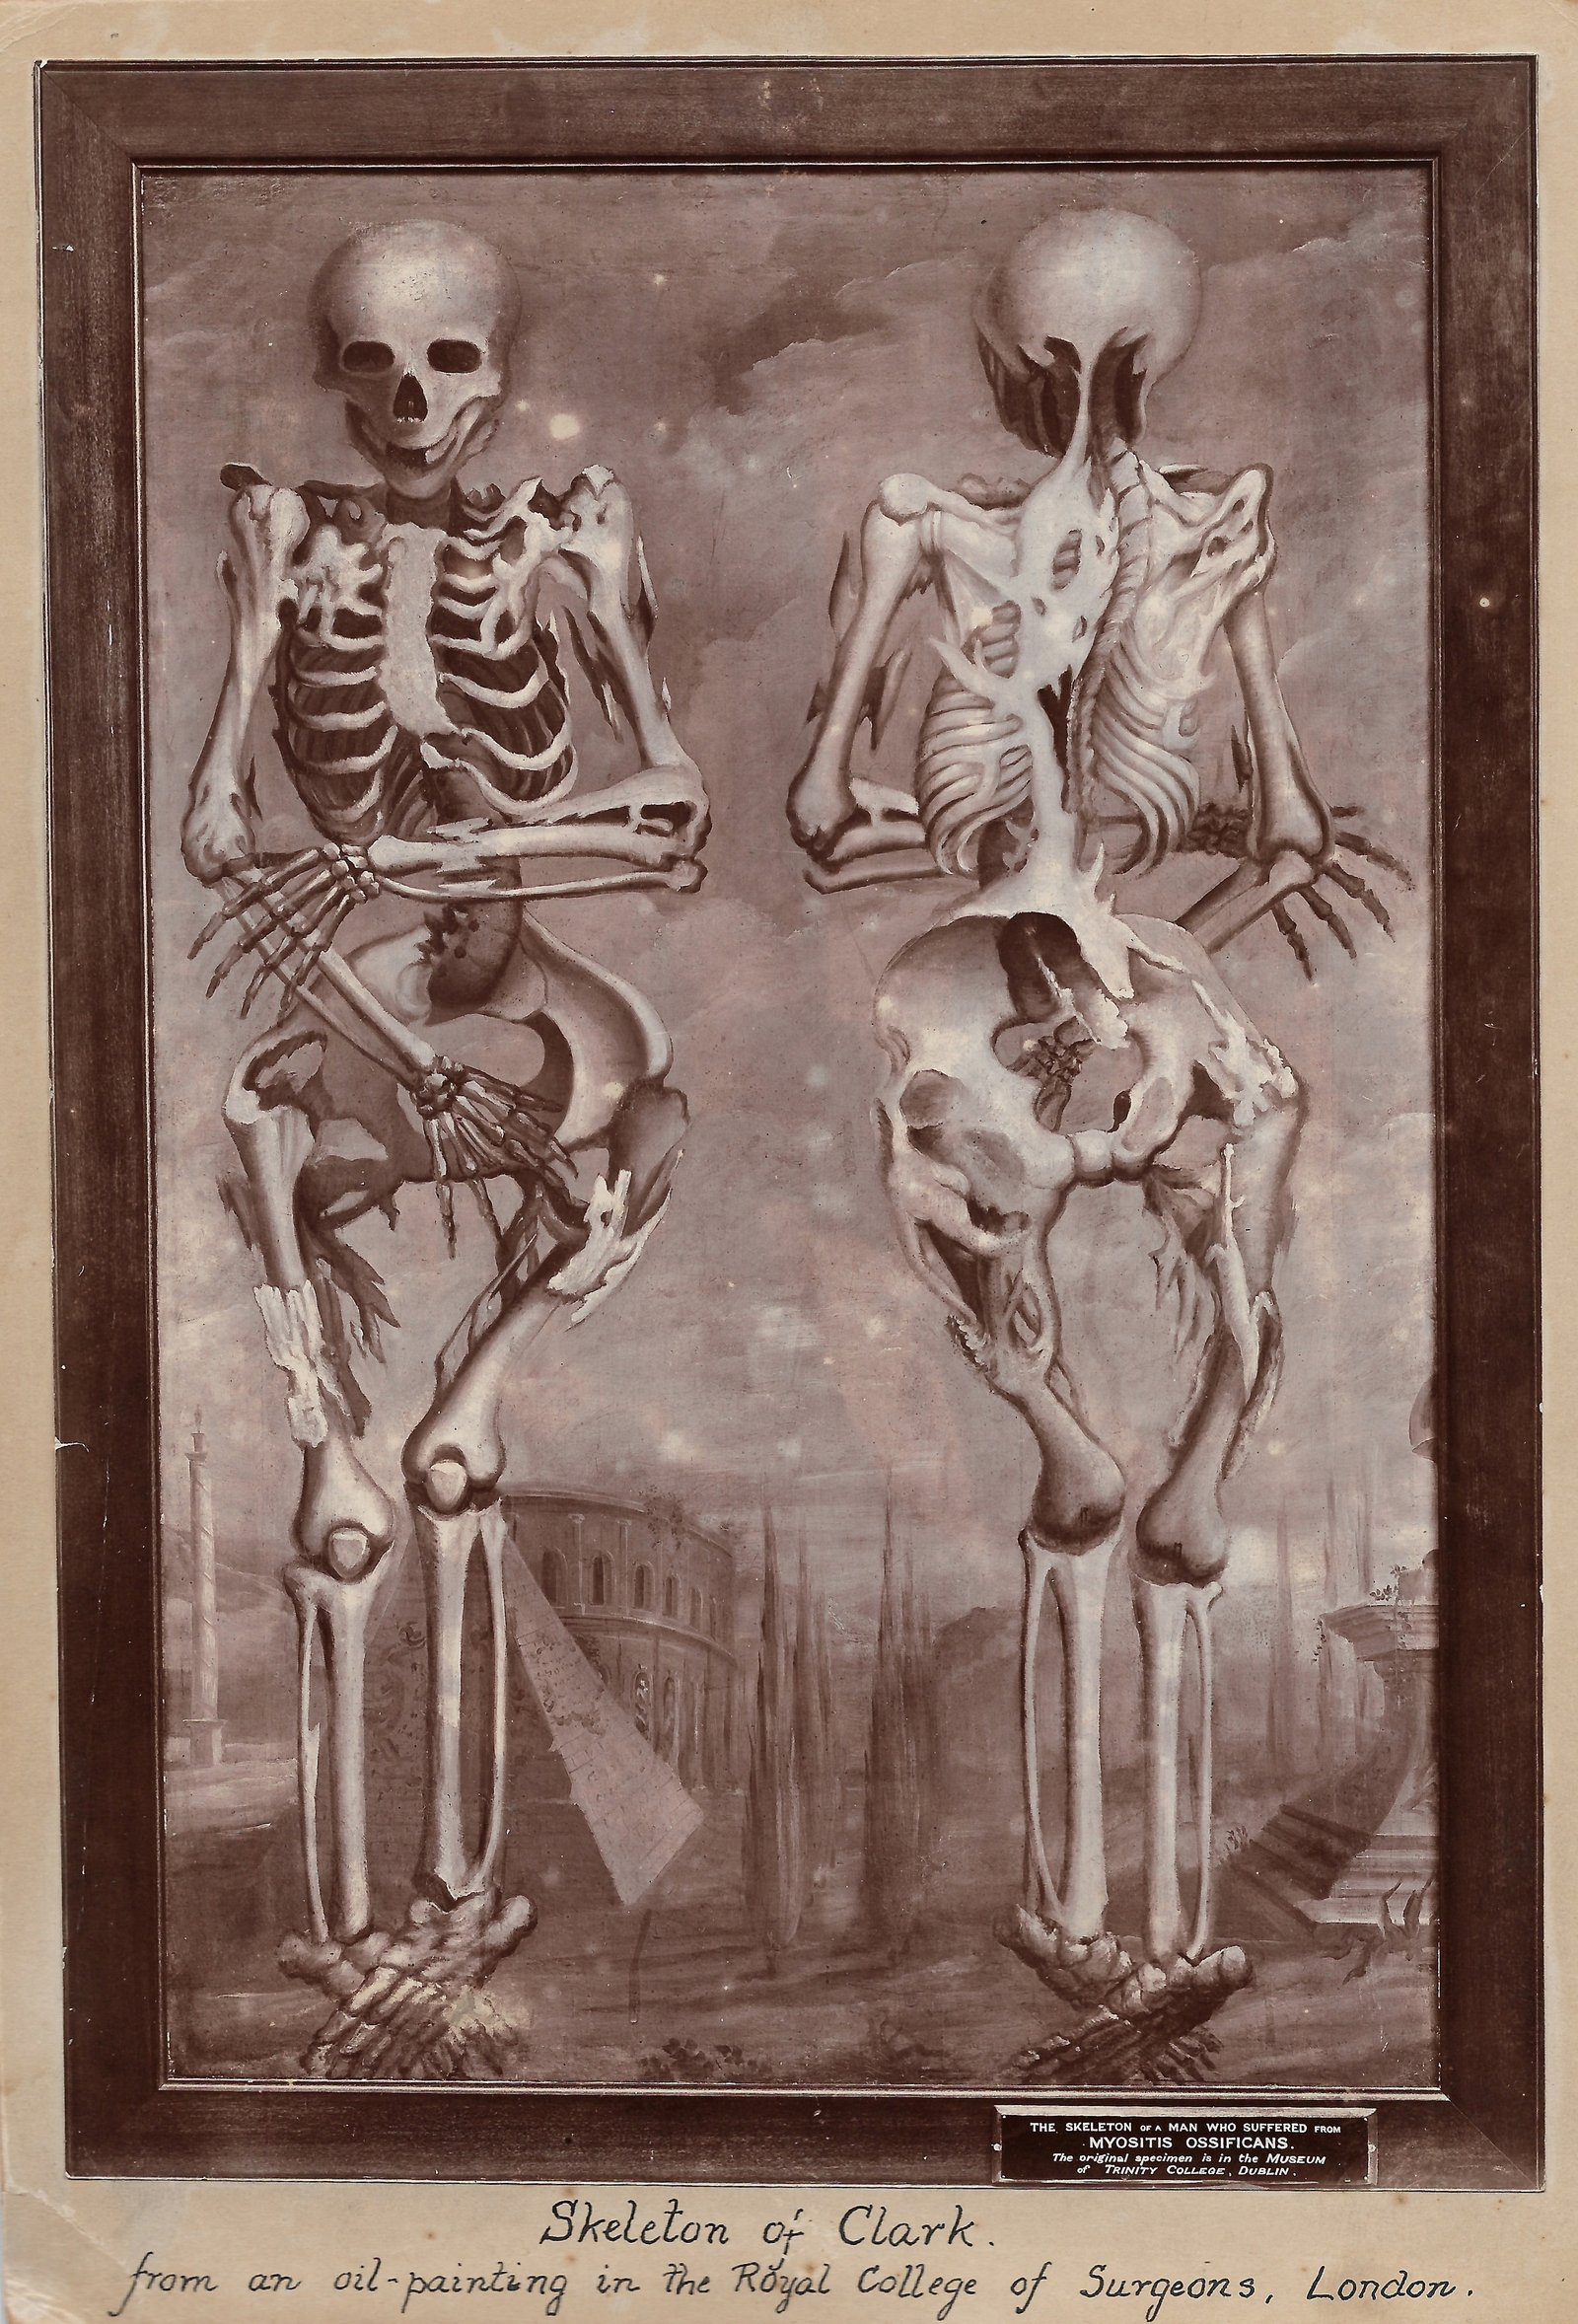 Image - Image of William Clark's skeleton copied from oil painting in the Royal College of Surgeons, London.